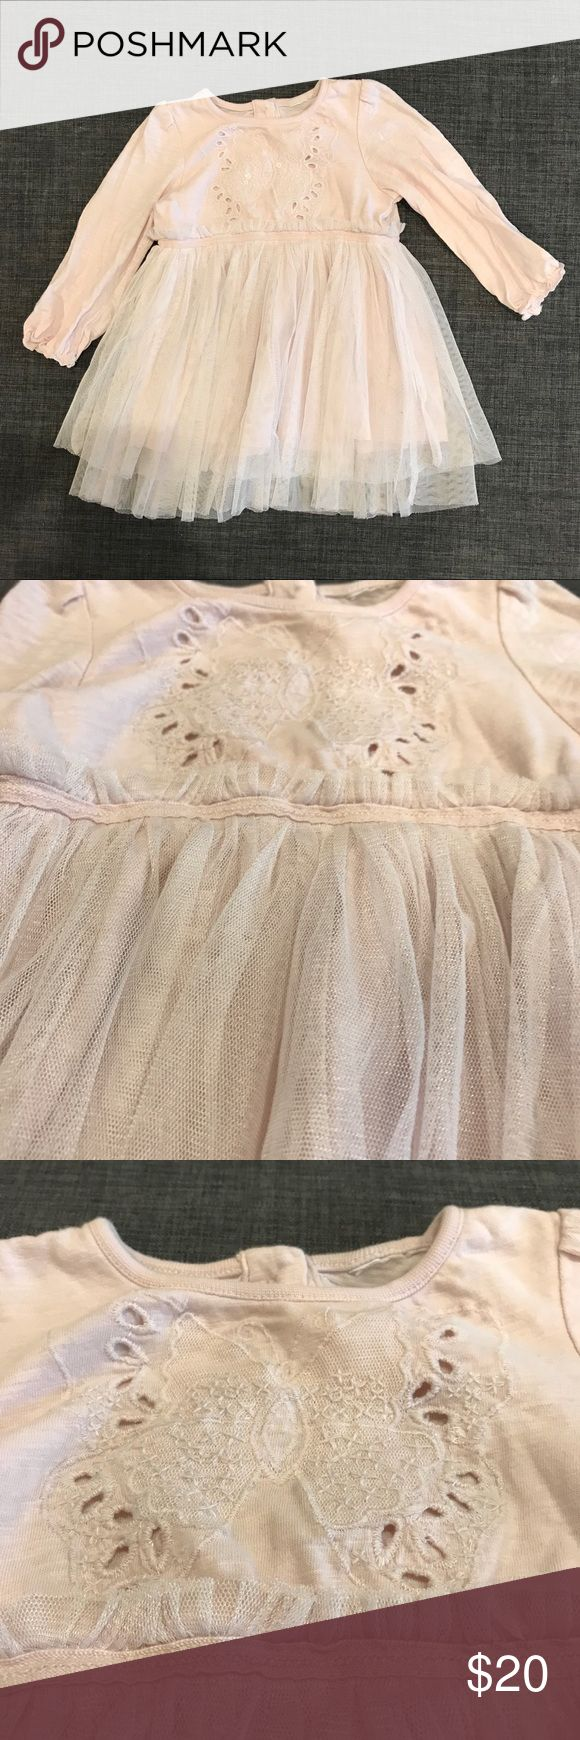 Next Toddler dress, size 6-9M Gently used baby dress in excellent condition. Very comfortable. I️t fit my baby girl passed 9 months. Tag notes up to 20lbs. Next is UK brand that makes quality clothing items. Check out my closet for more items. Next Dresses Casual